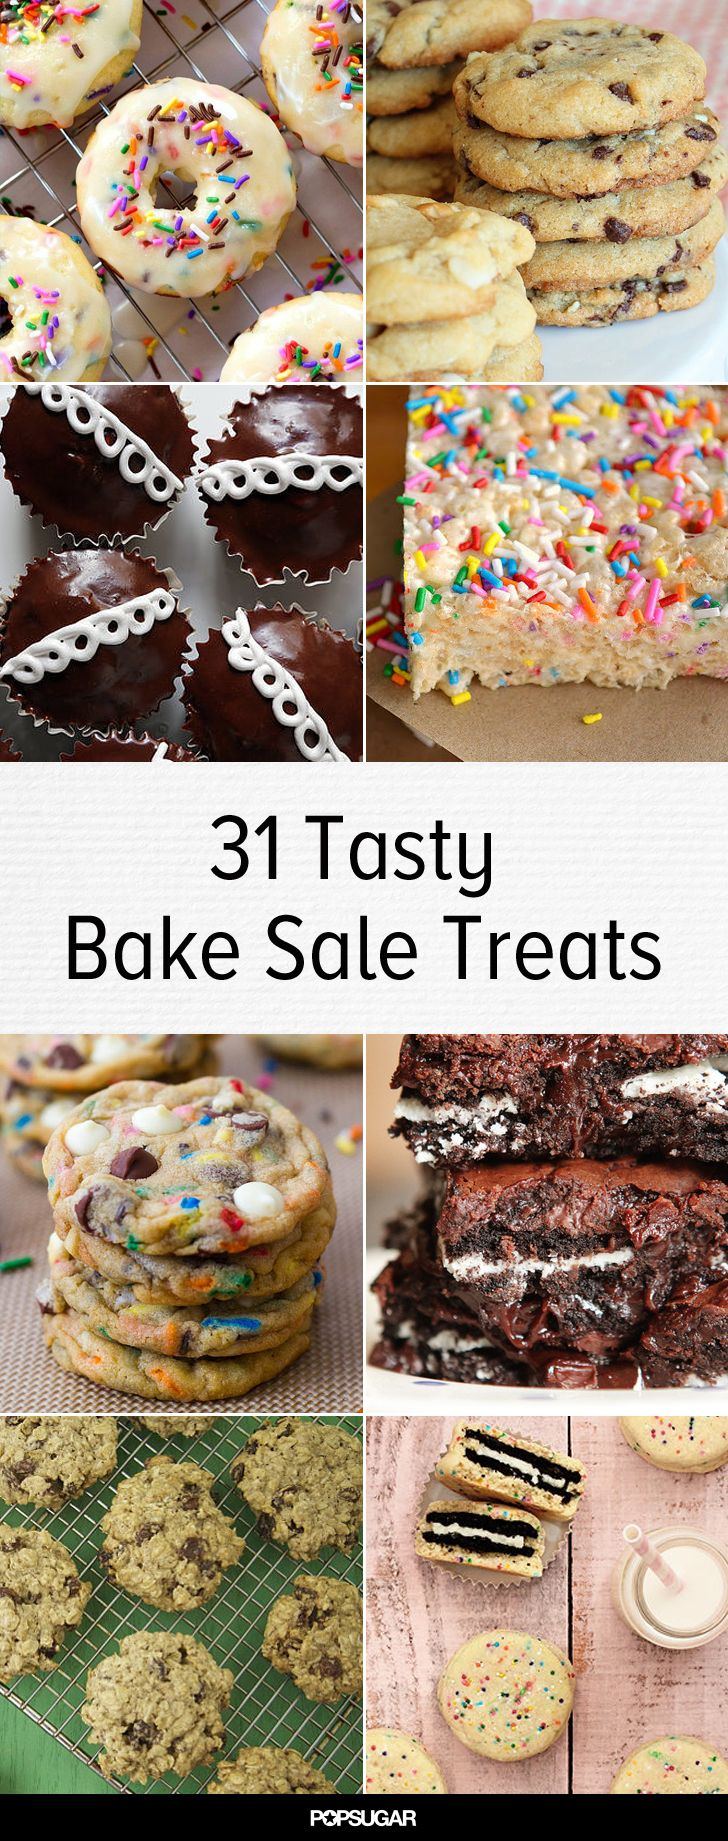 Food Sale: 31 Ways To Nail The Next School Bake Sale